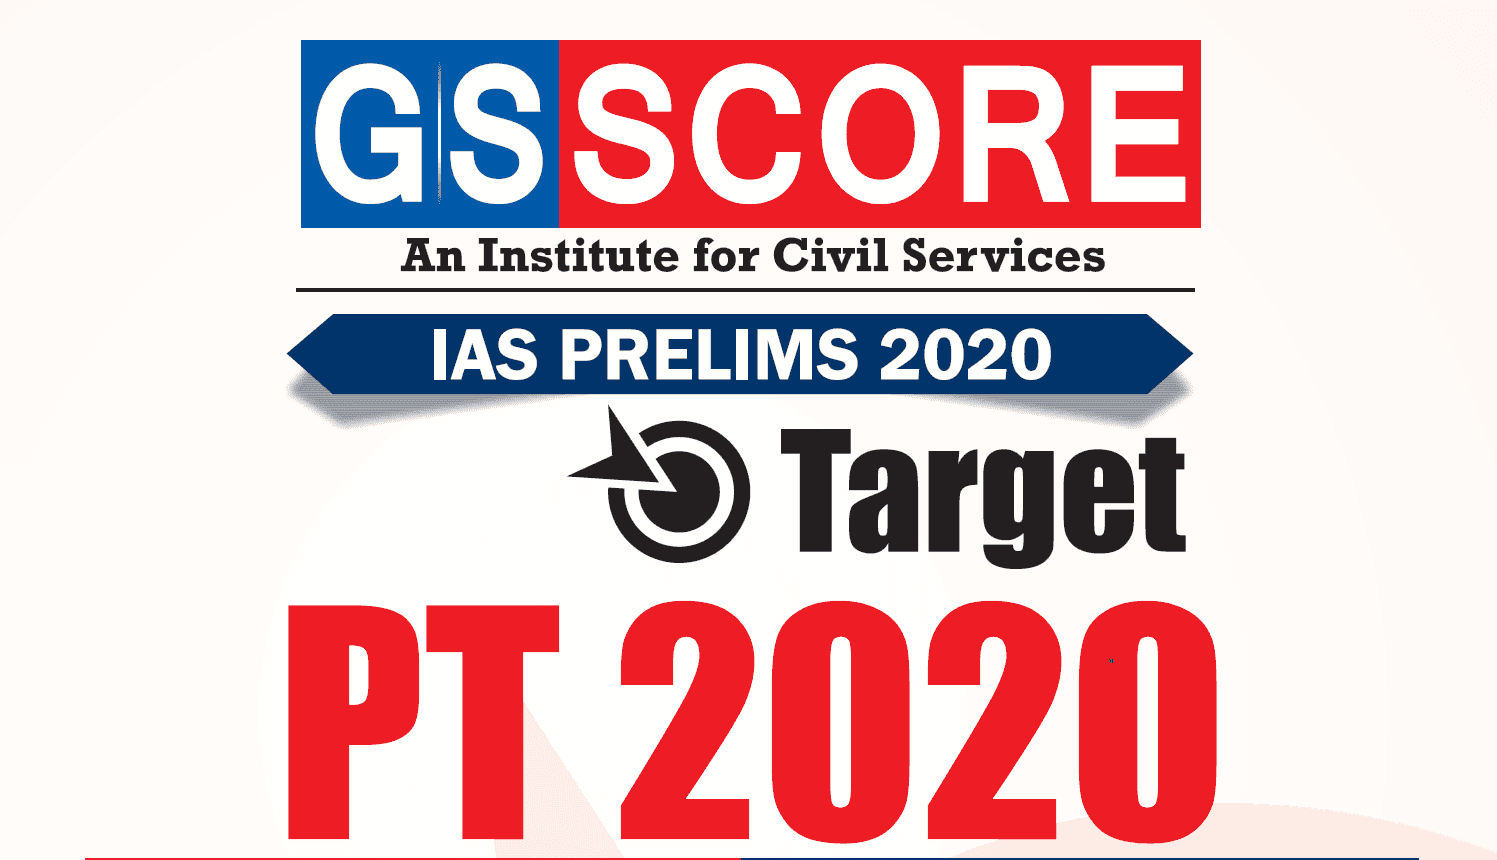 GS Score Geography Target 2020